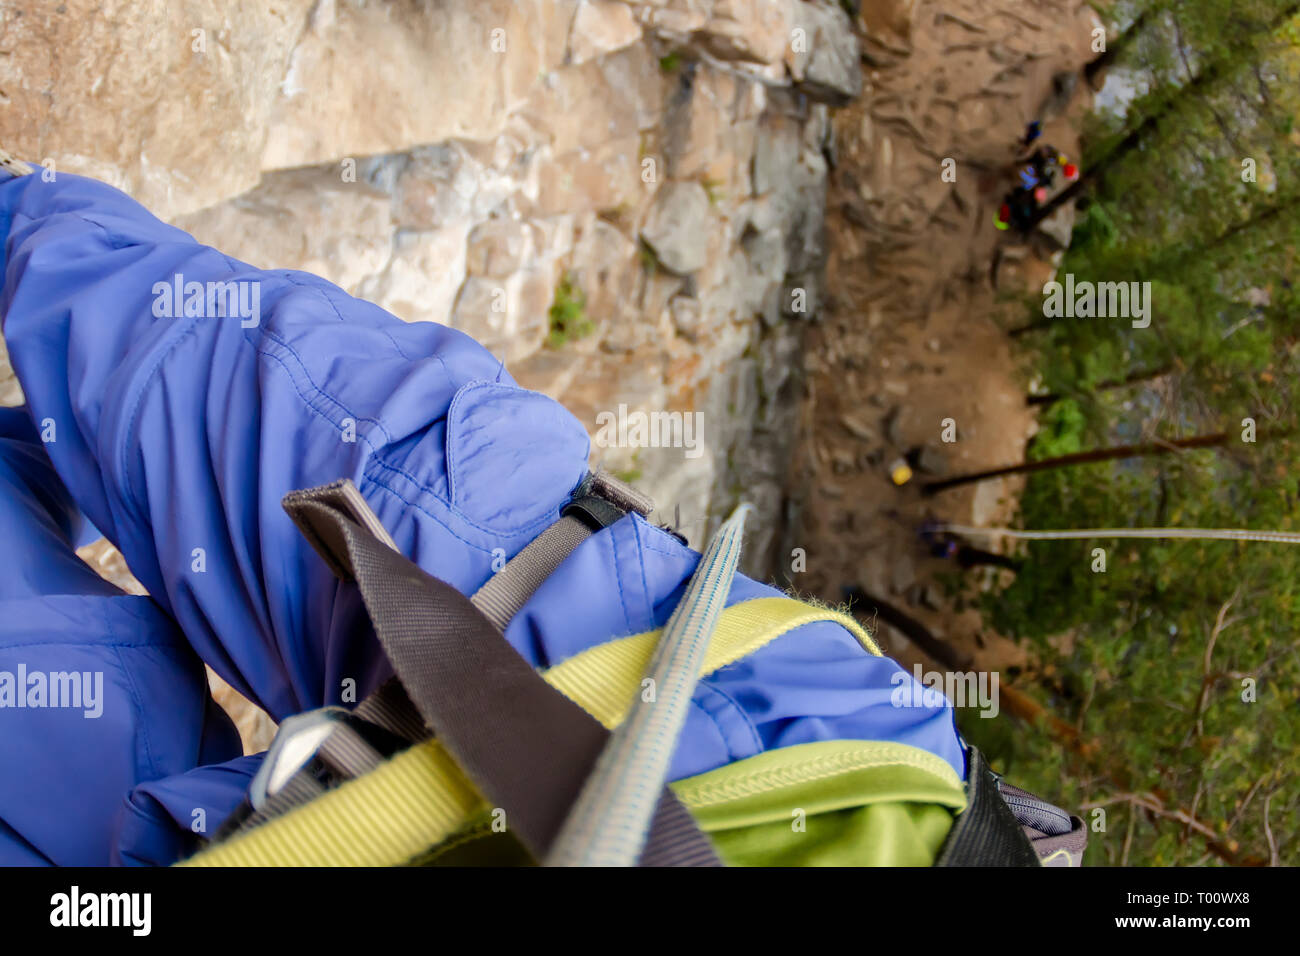 Climber's legs hanging on a rope in a harness, first person view from top to bottom - Stock Image